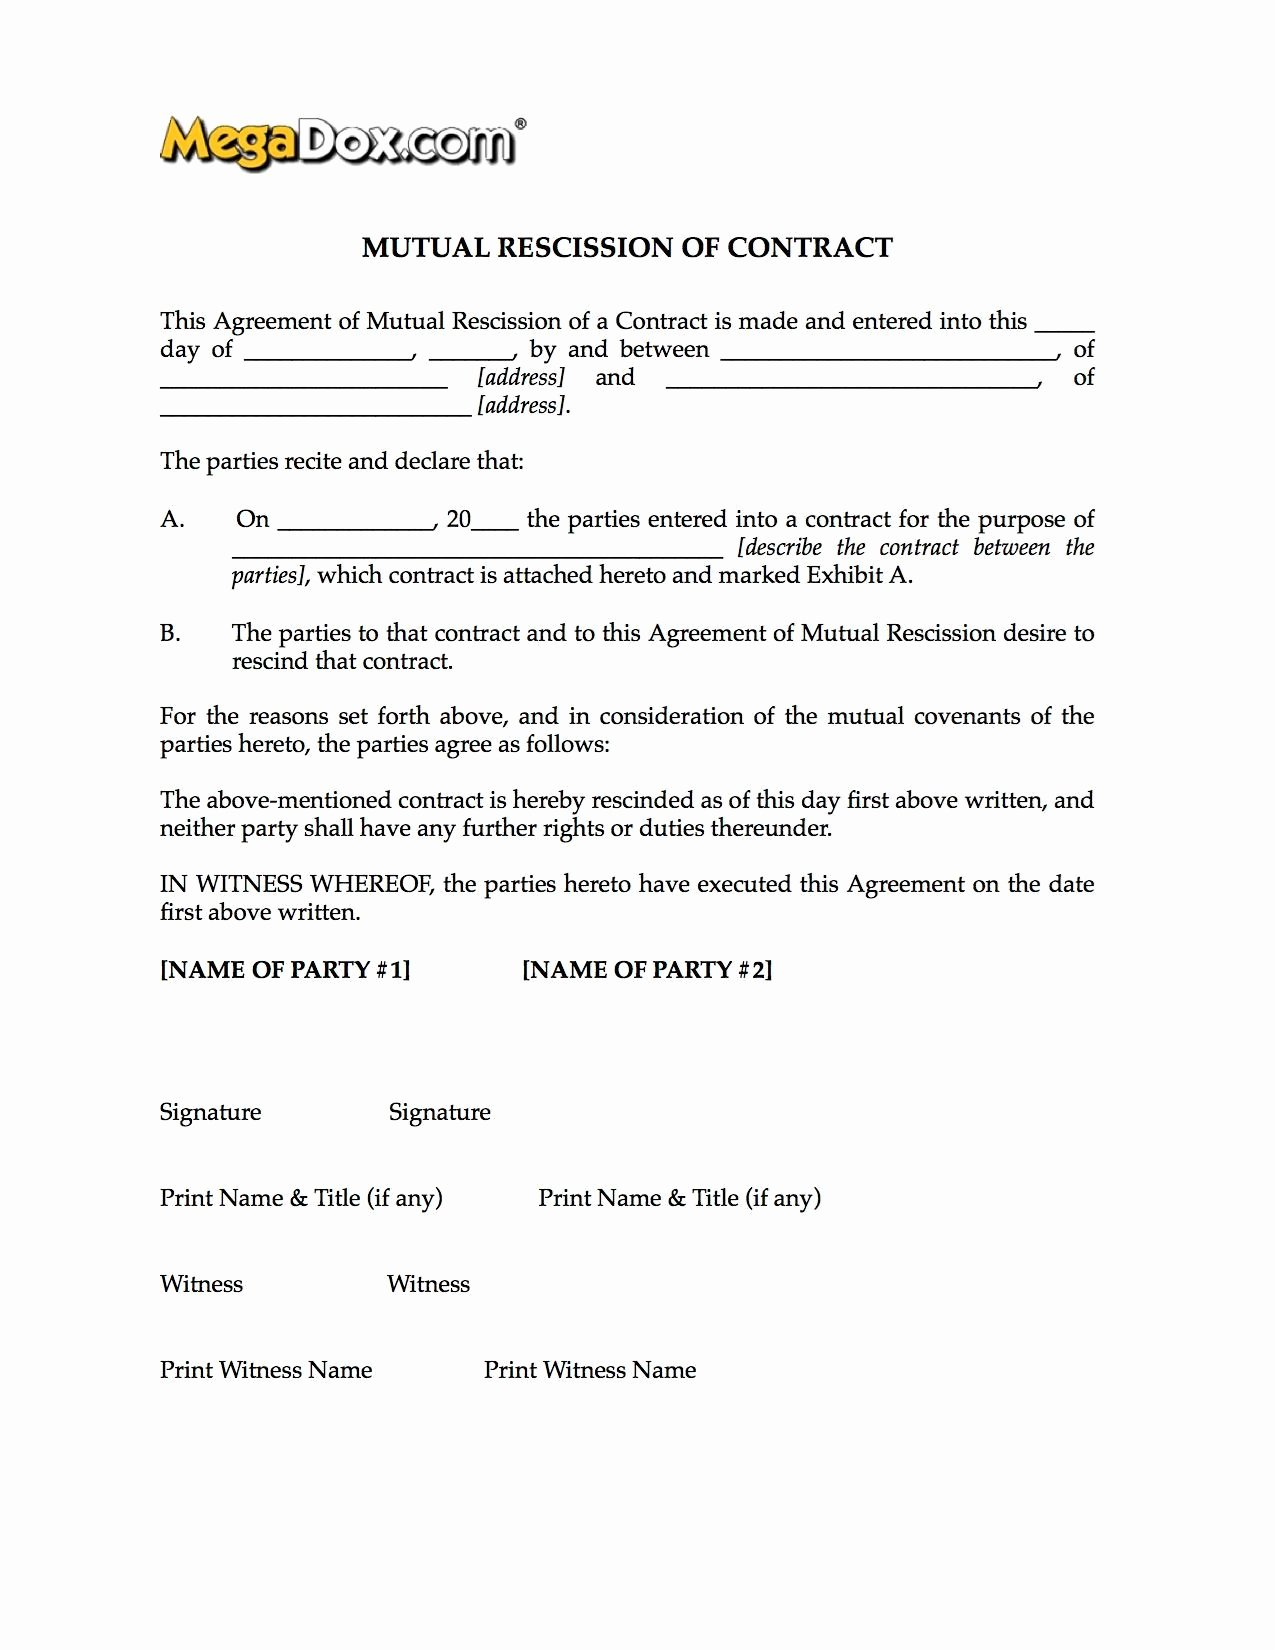 Letter Of Rescission Template Beautiful Mutual Rescission Of Contract form